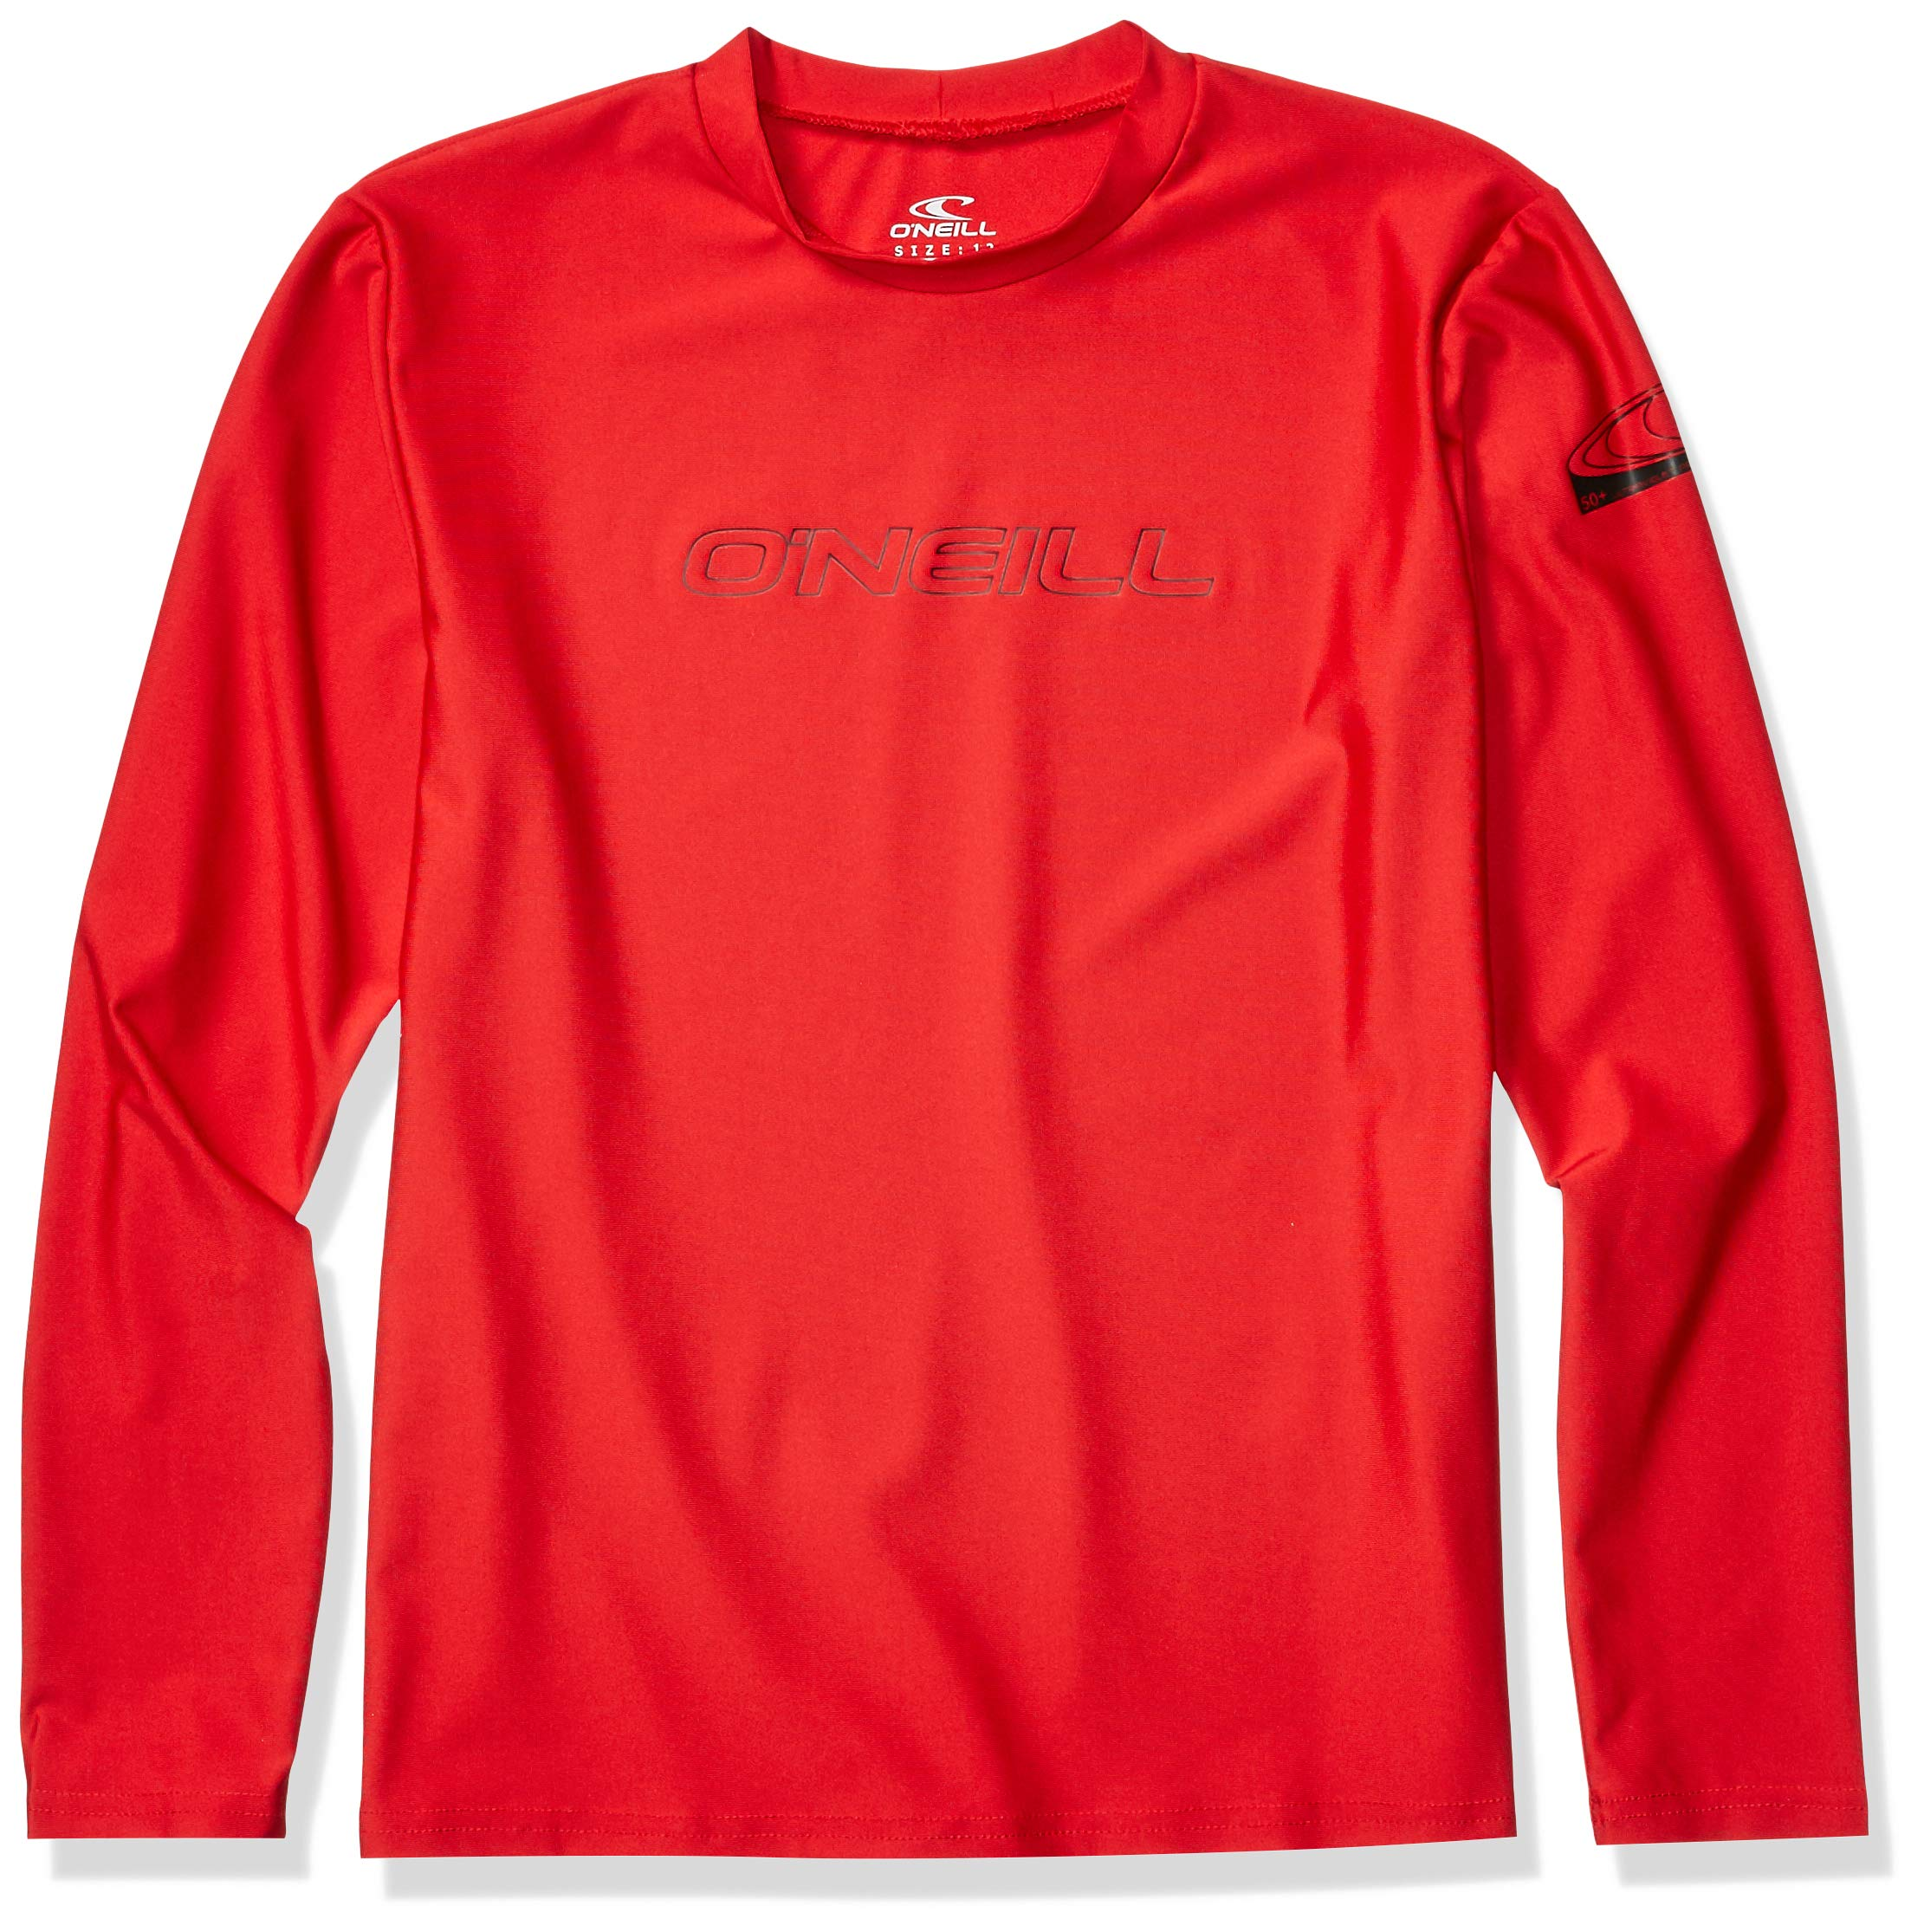 O'Neill Wetsuits Youth Basic Skins UPF 50+ Long Sleeve Sun Shirt, Red, Size 14 by O'Neill Wetsuits